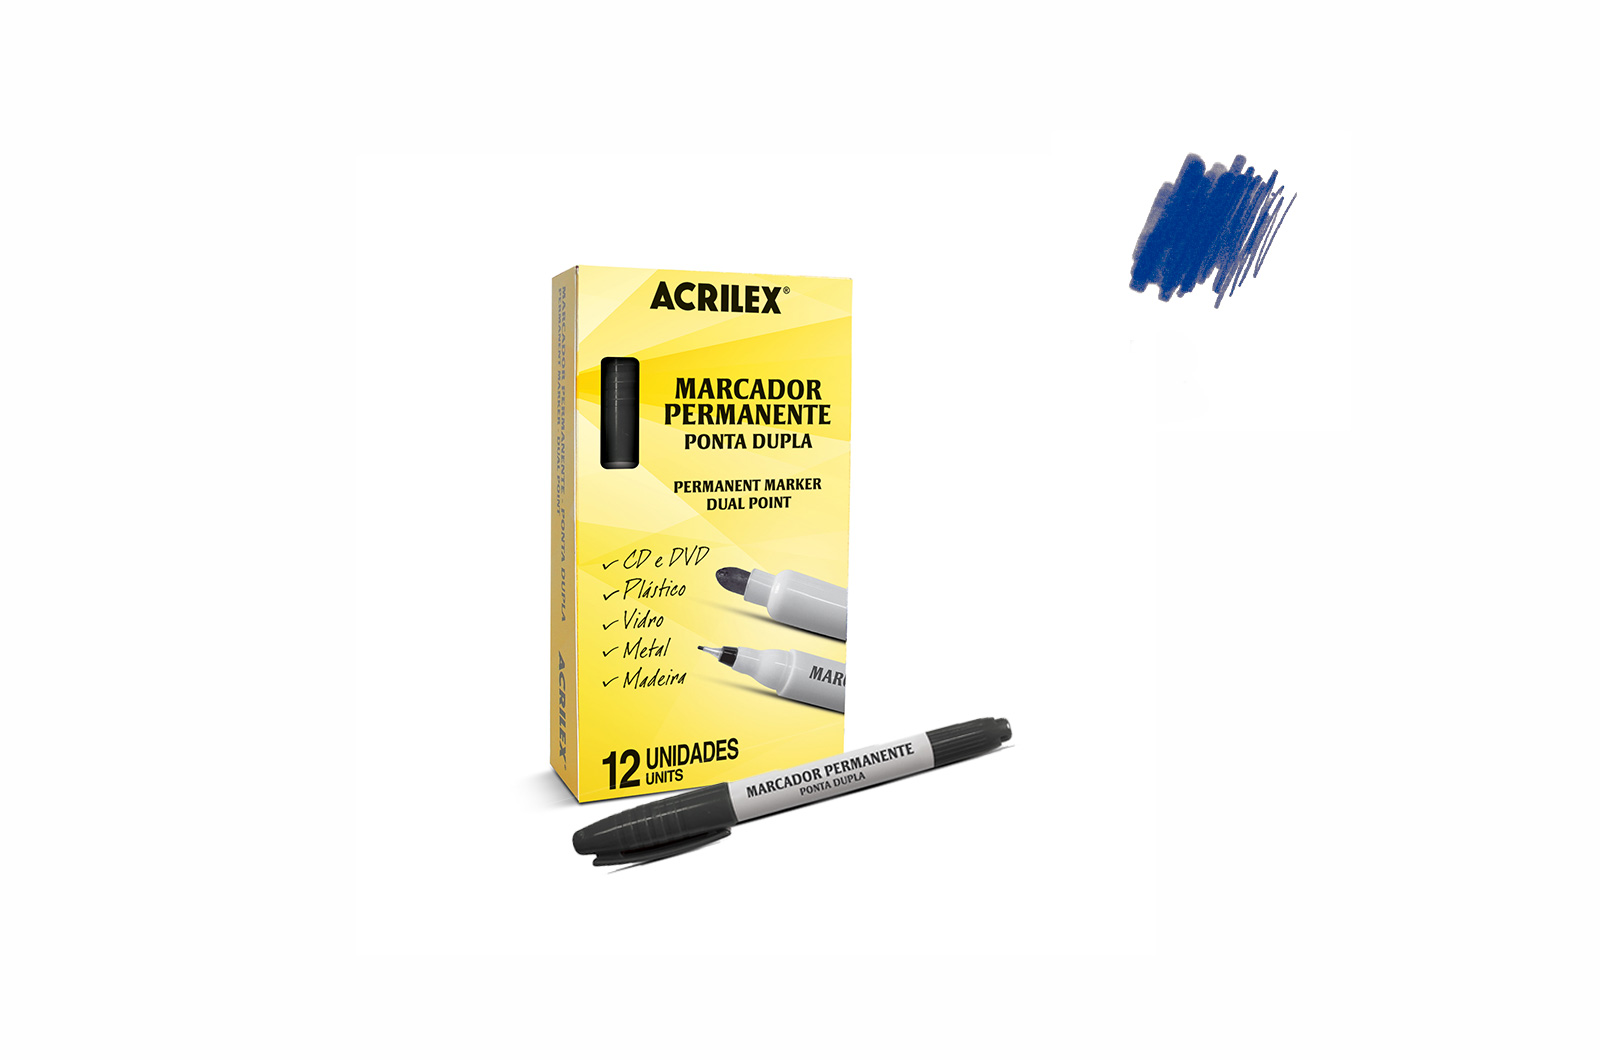 PARMANENT MARKER DUAL POINT BLUE 06212521 ACRILEX